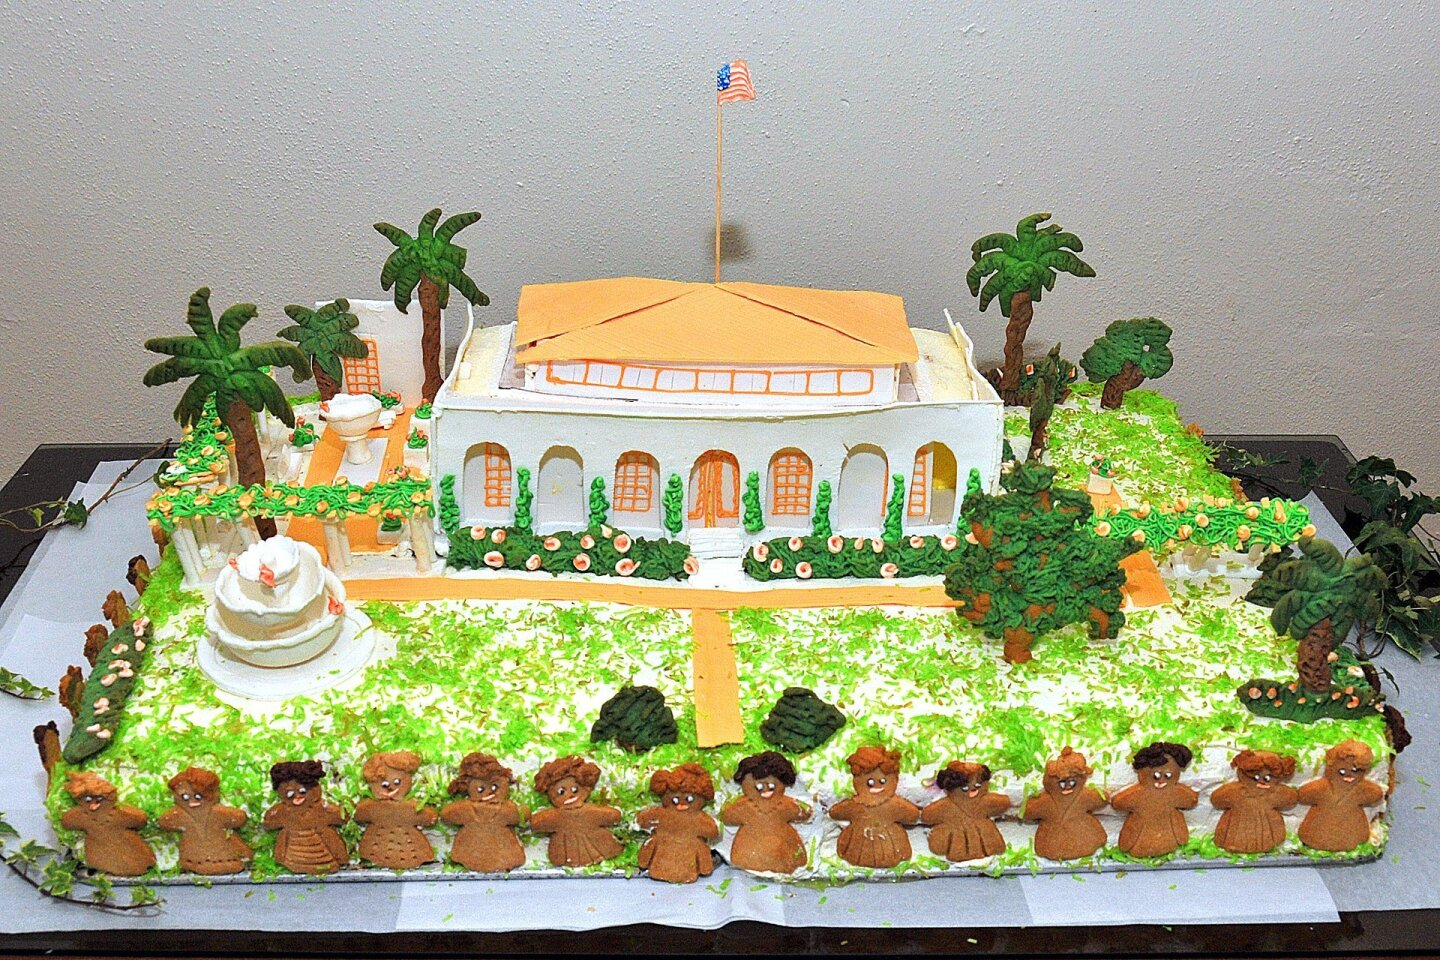 The 'birthday' cake replica of the La Jolla Woman's Club building and grounds was created by Girard Gourmet for La Jolla Woman's Club's gala celebrating the 100th year of its historic Irving Gill-designed clubhouse/building on Oct. 17, 2014.